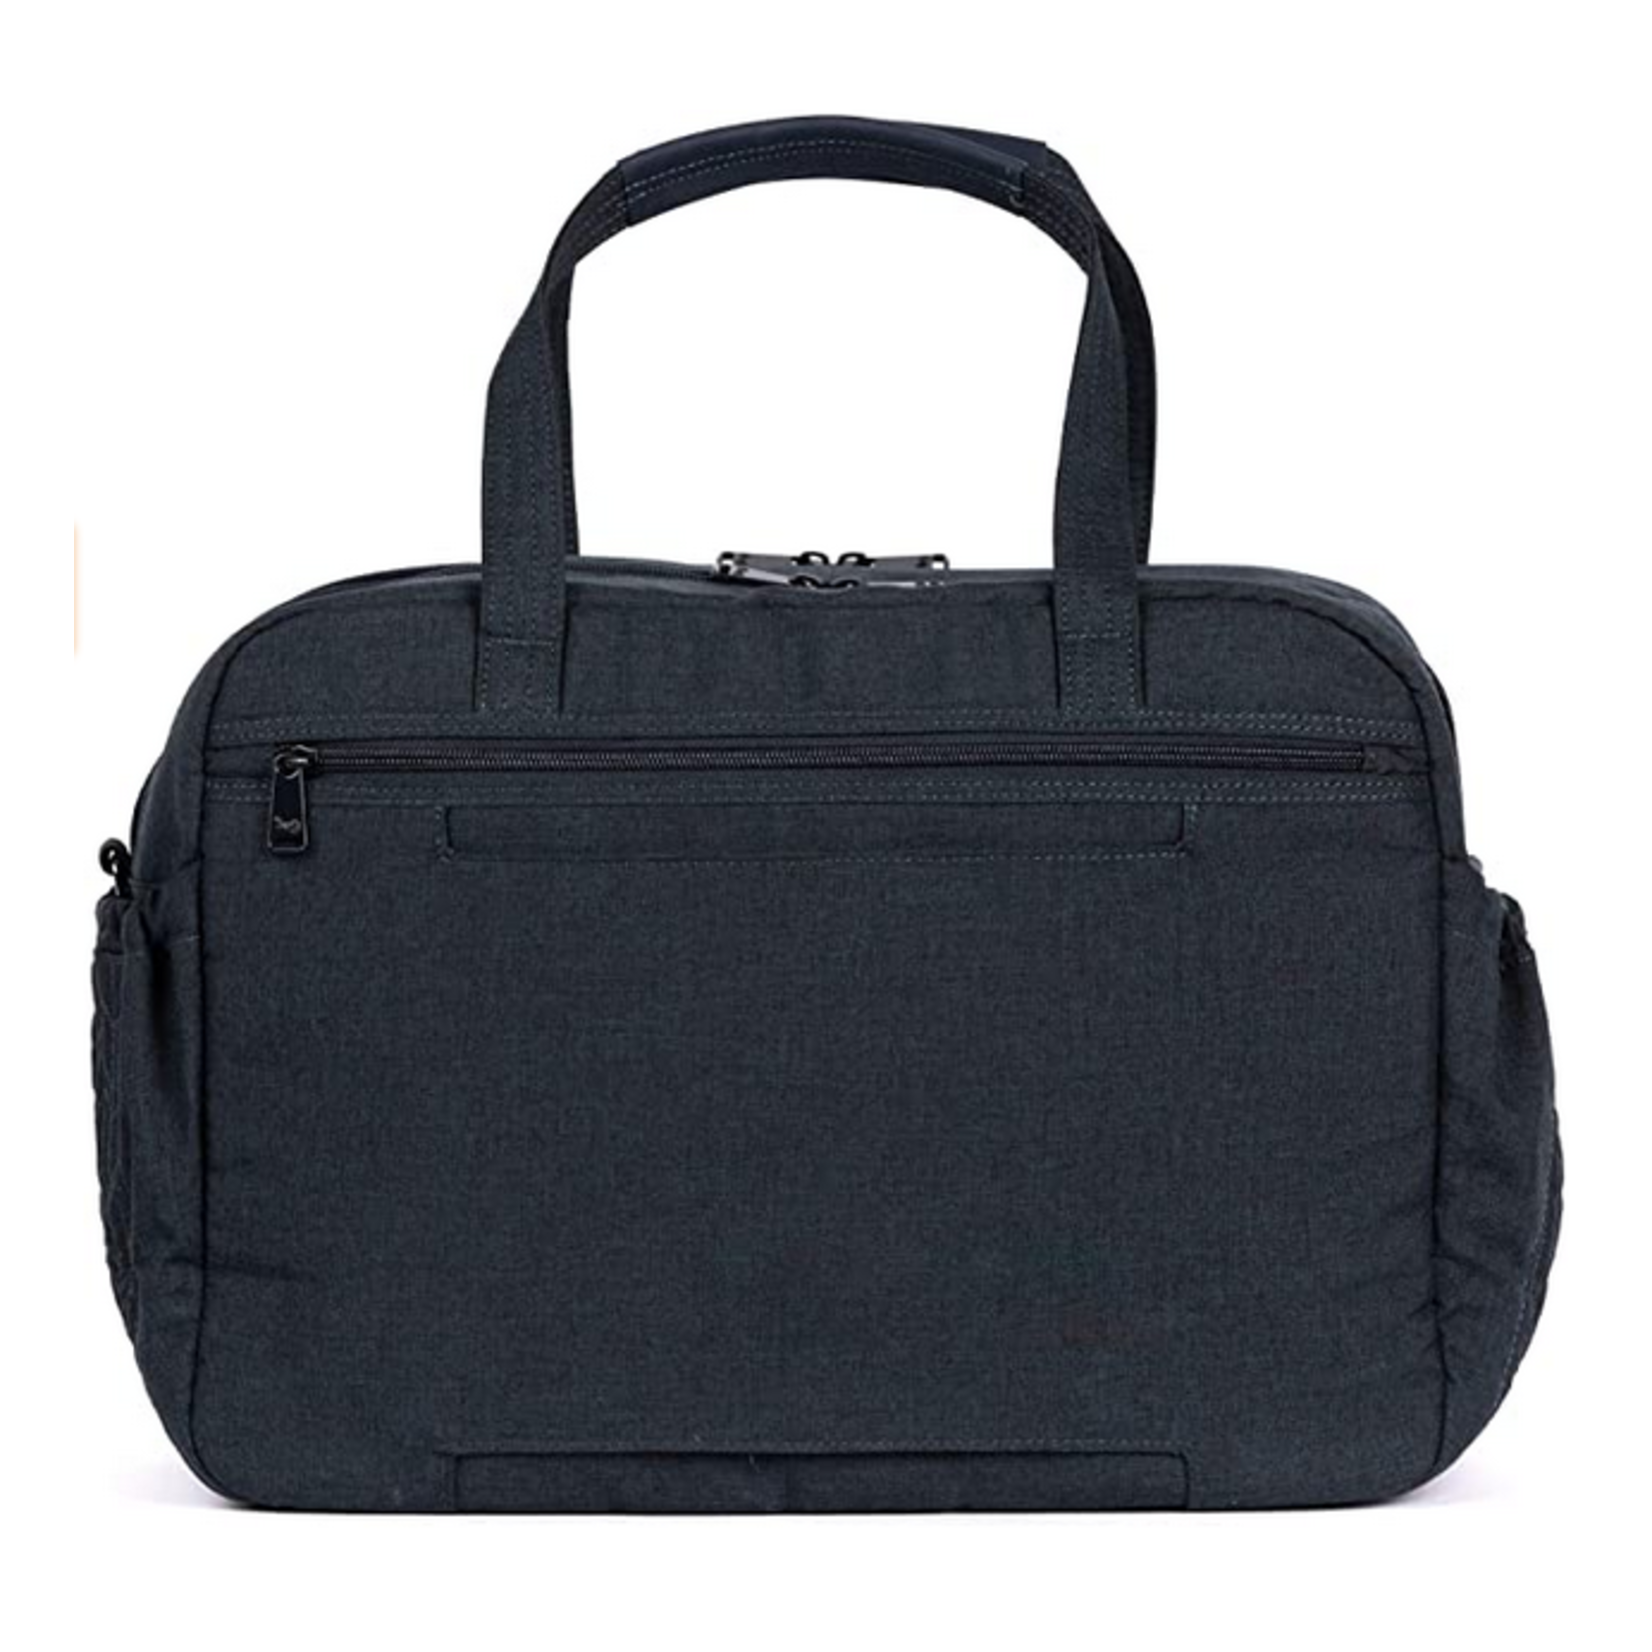 LUG CANADA INC PUDDLE JUMPER DUFFEL